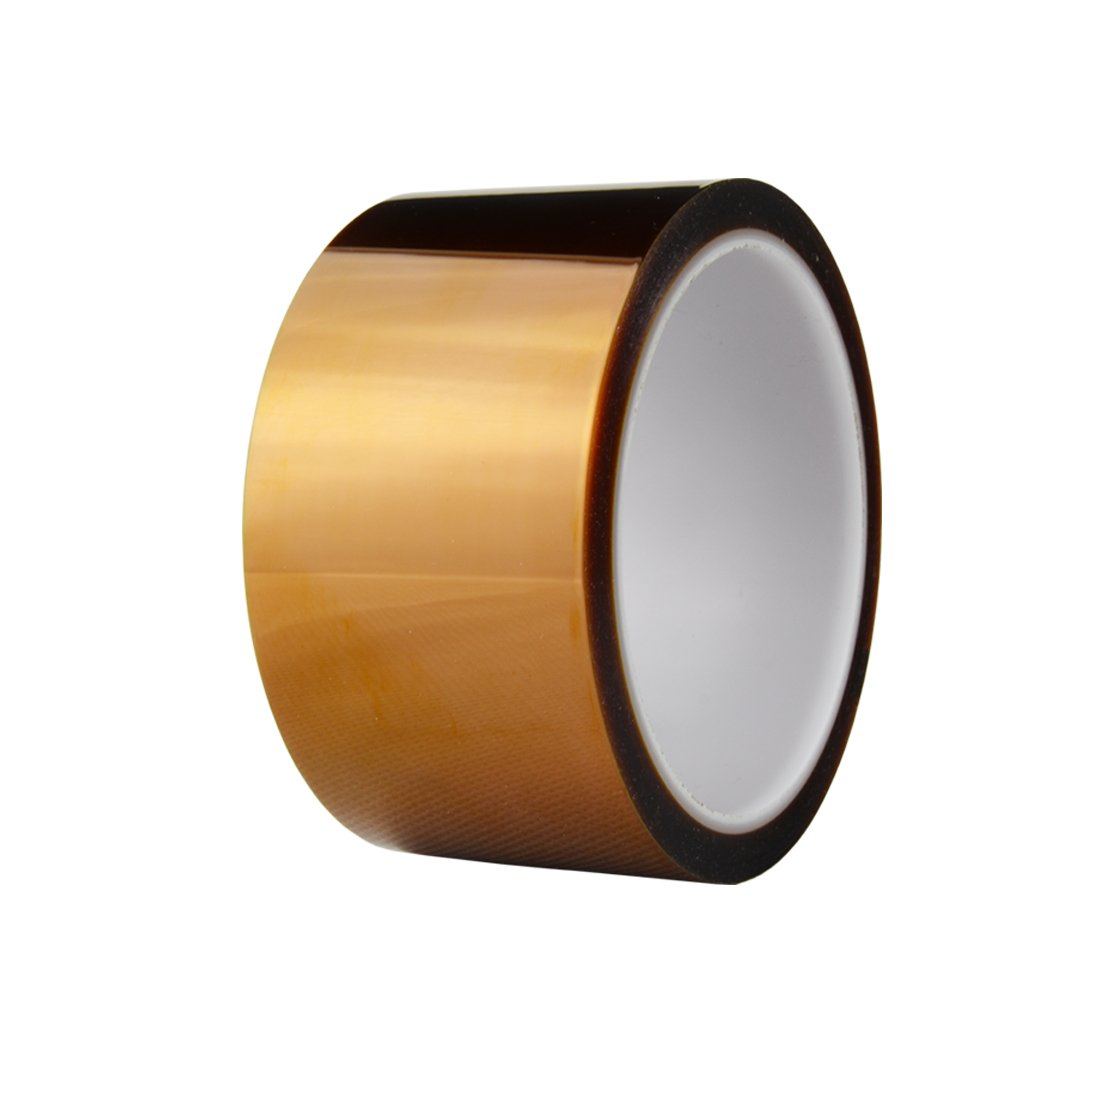 Hxtape High Temperature Kapton Tape,Polyimide Film Tape to Masking,3D Printing,Electric Task,Soldering,2 inch (50mm),36yds by Hxtape